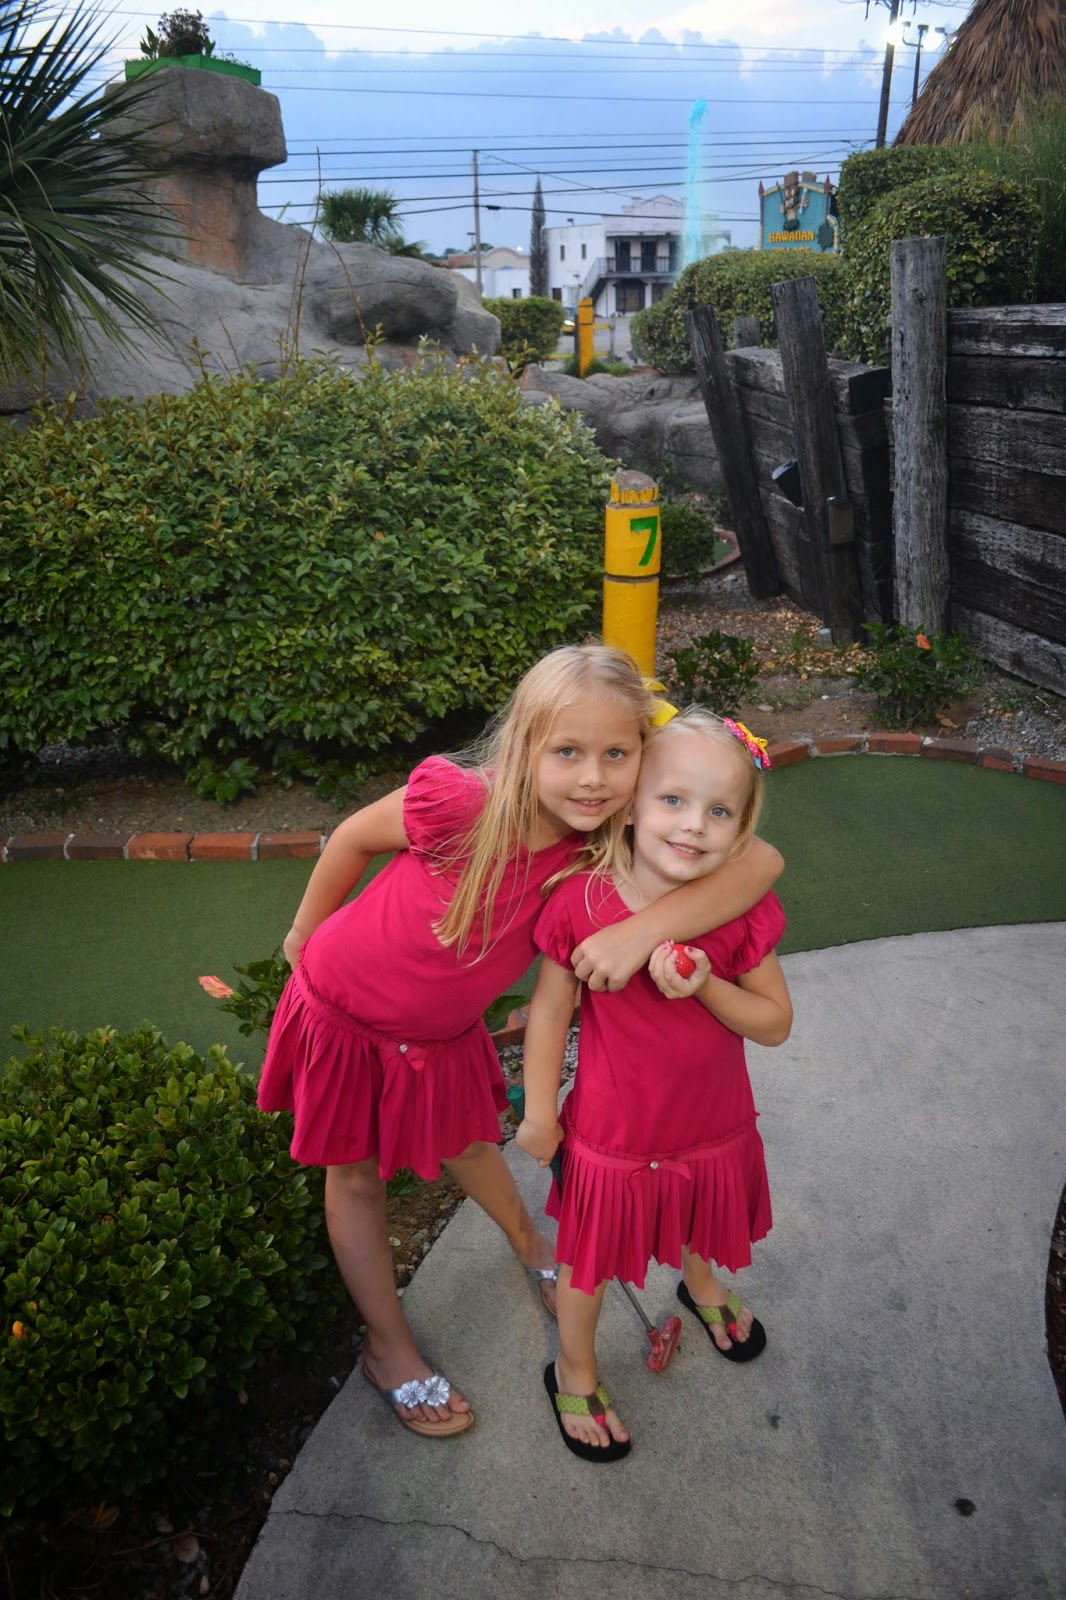 More Mini Golf in Myrtle Beach